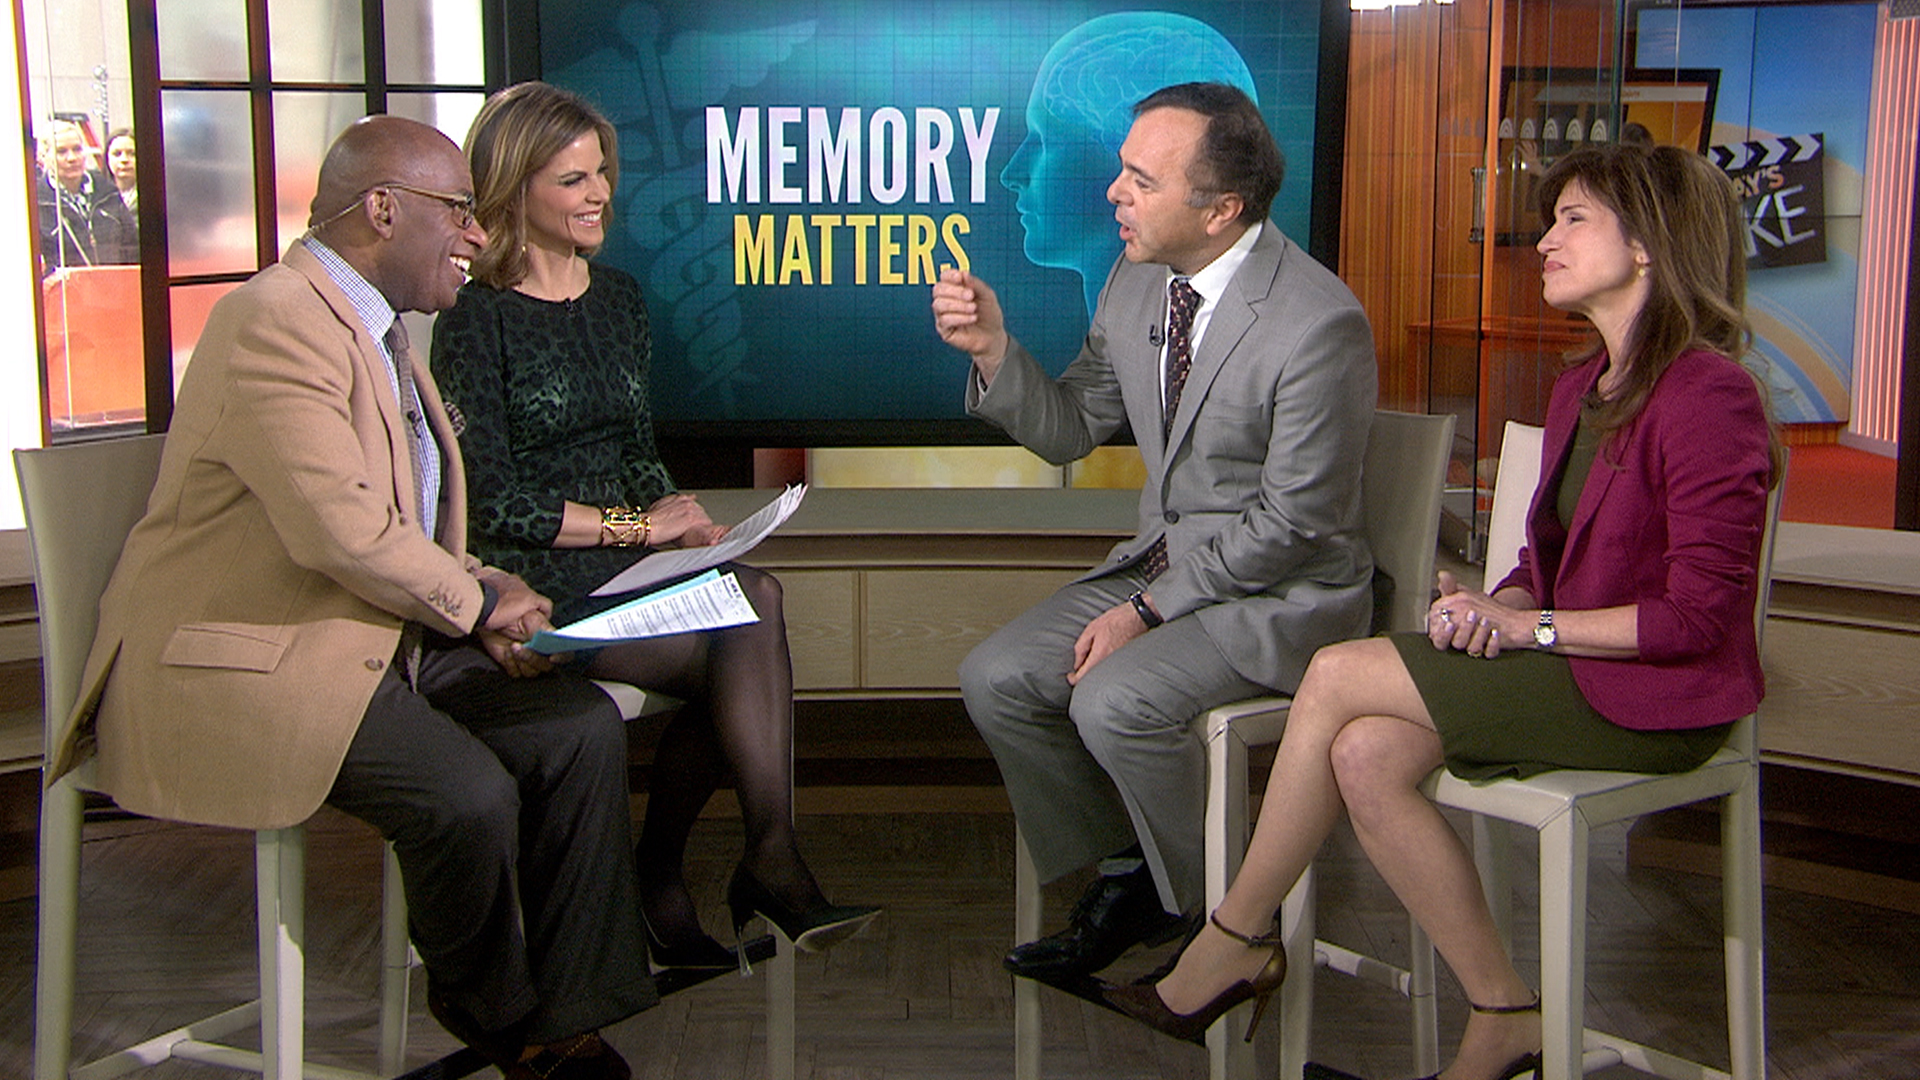 Report: Memory loss affects 1 in 10 US households